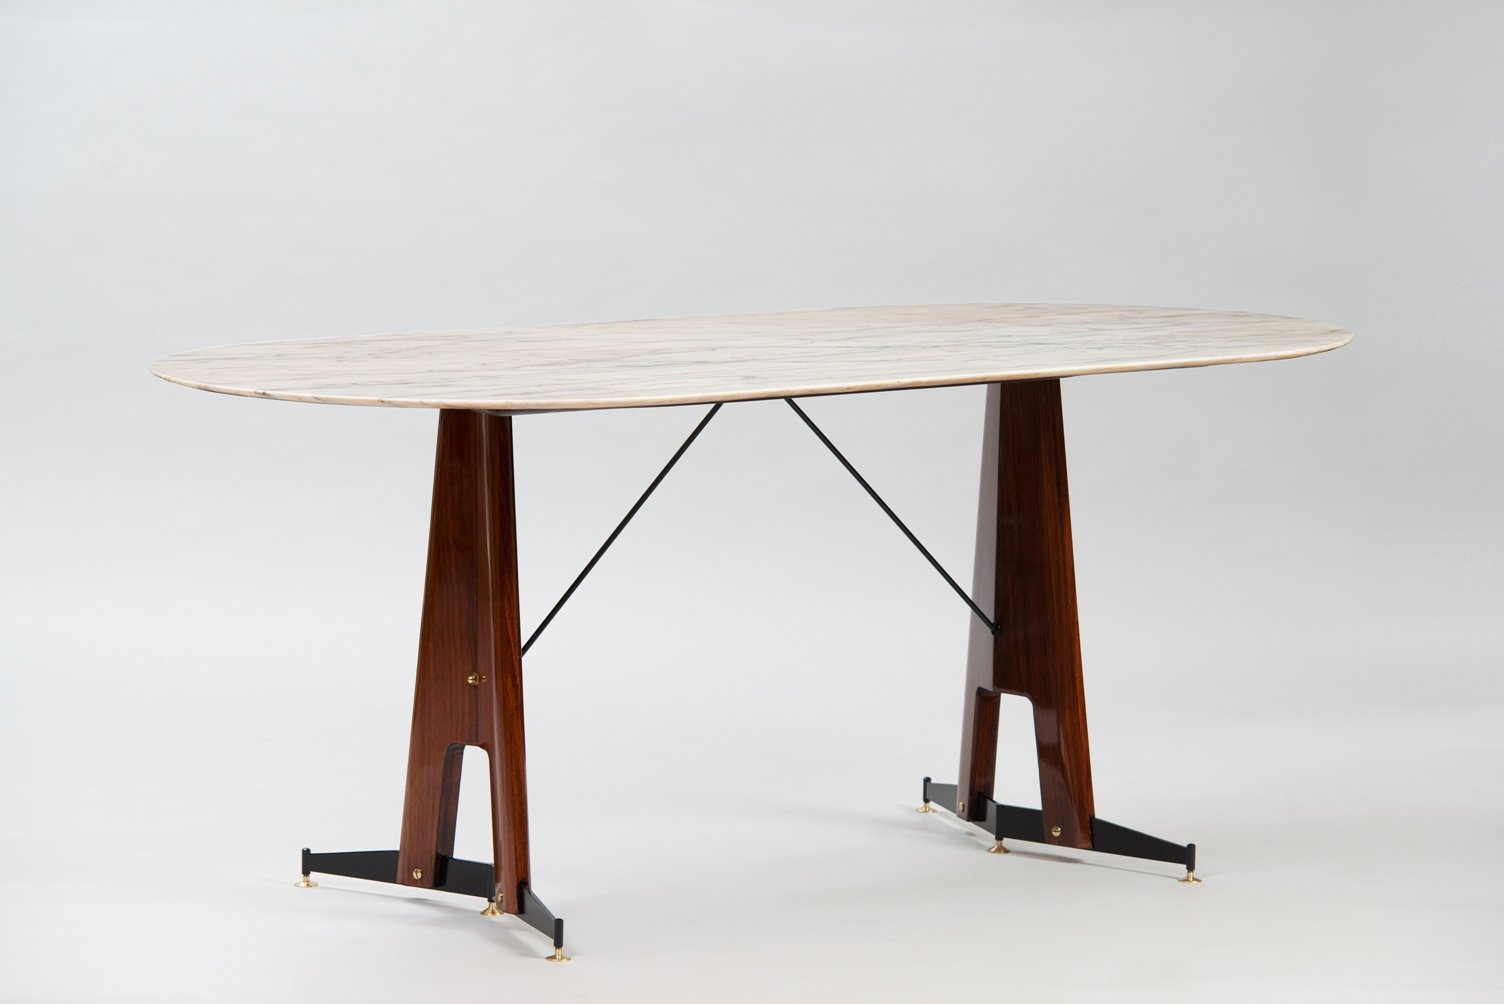 Best table salle a manger marbre design ideas lalawgroup - Table salle a manger alinea ...